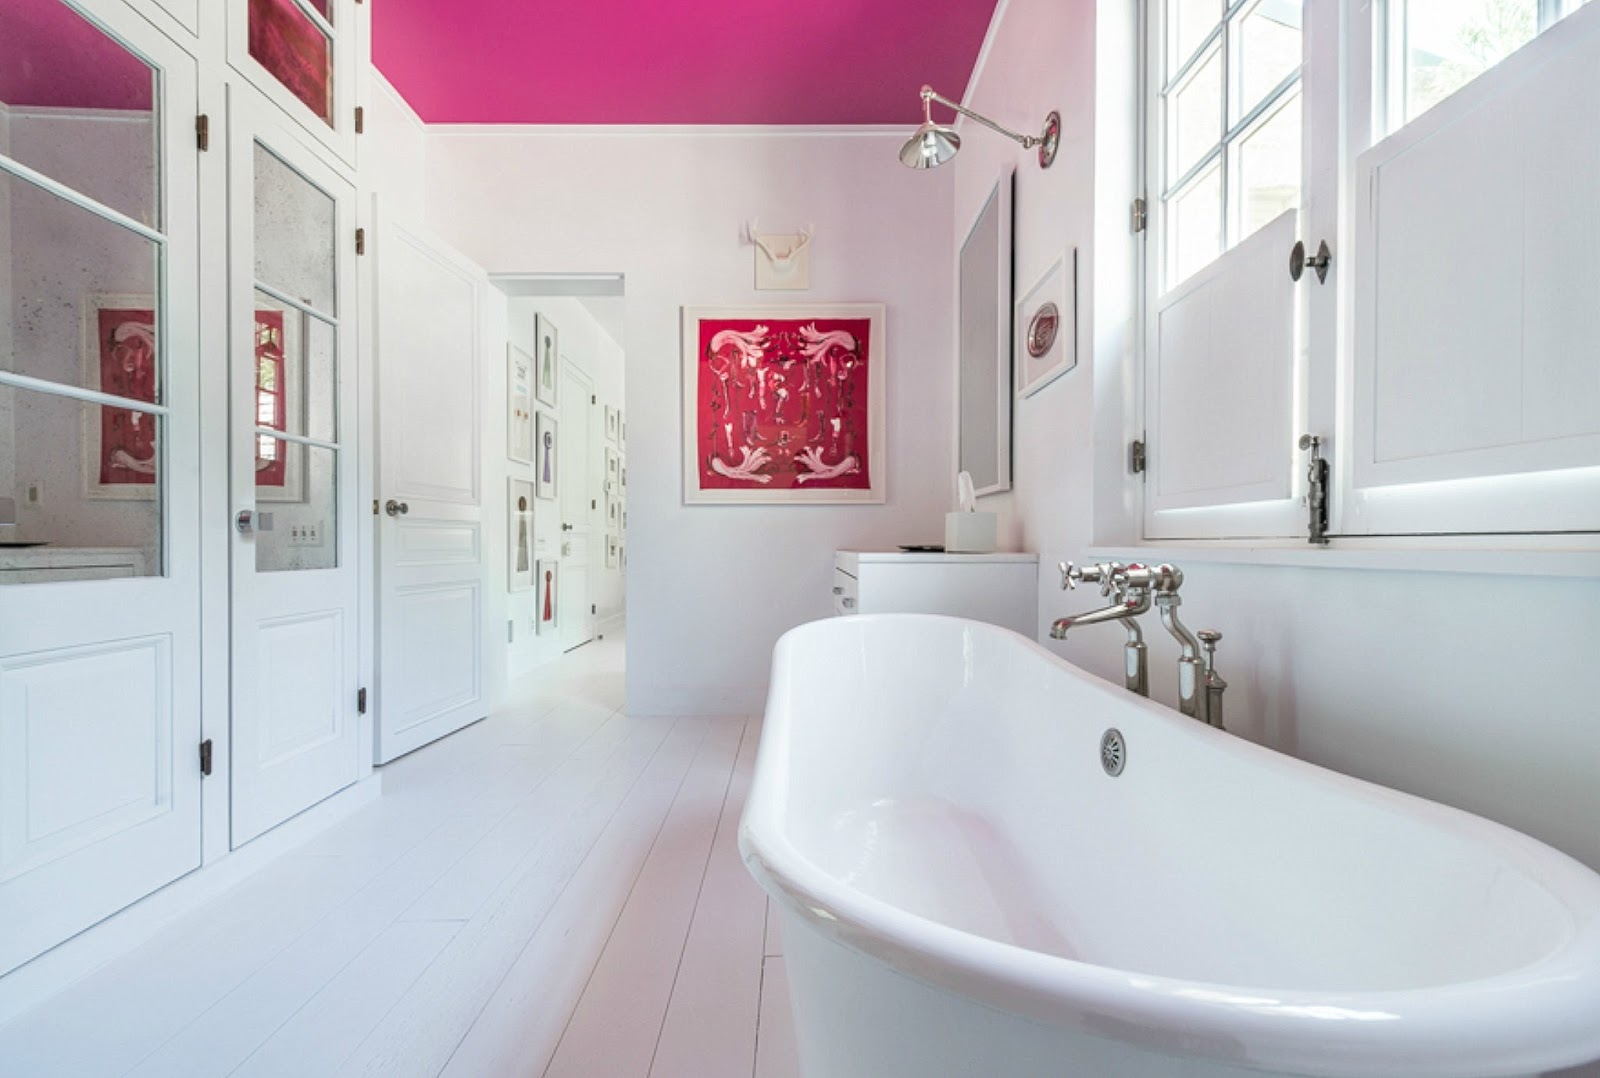 cote de texas a beautiful house in atlanta again and the bathroom with the hot pink ceiling and white wood floor love this